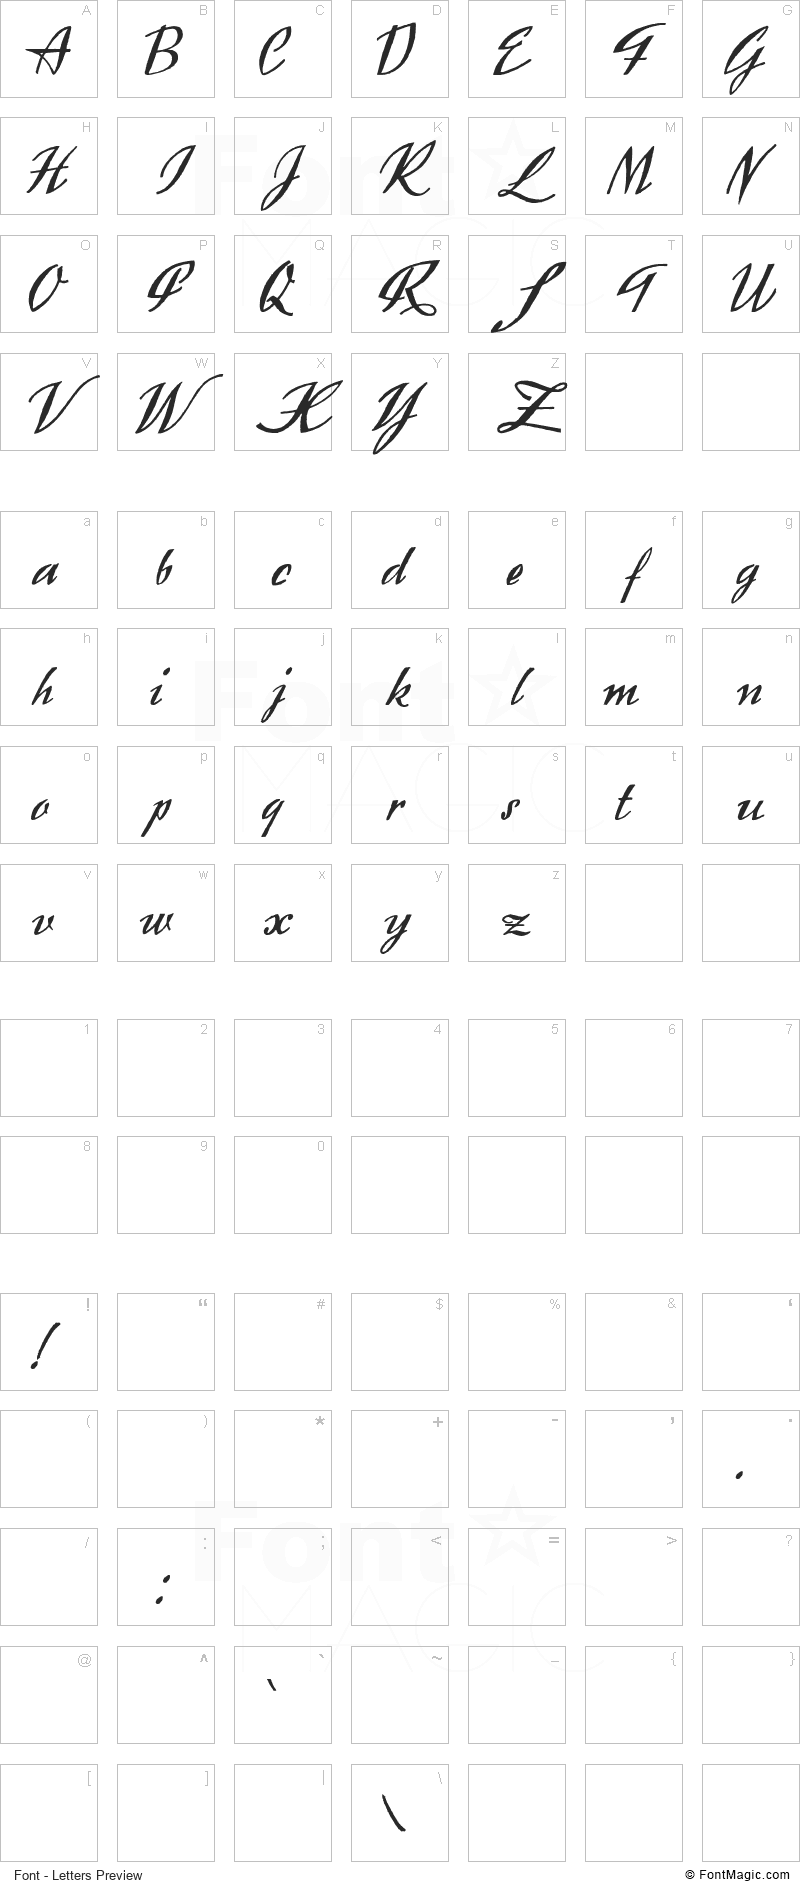 Exclusivite Font - All Latters Preview Chart